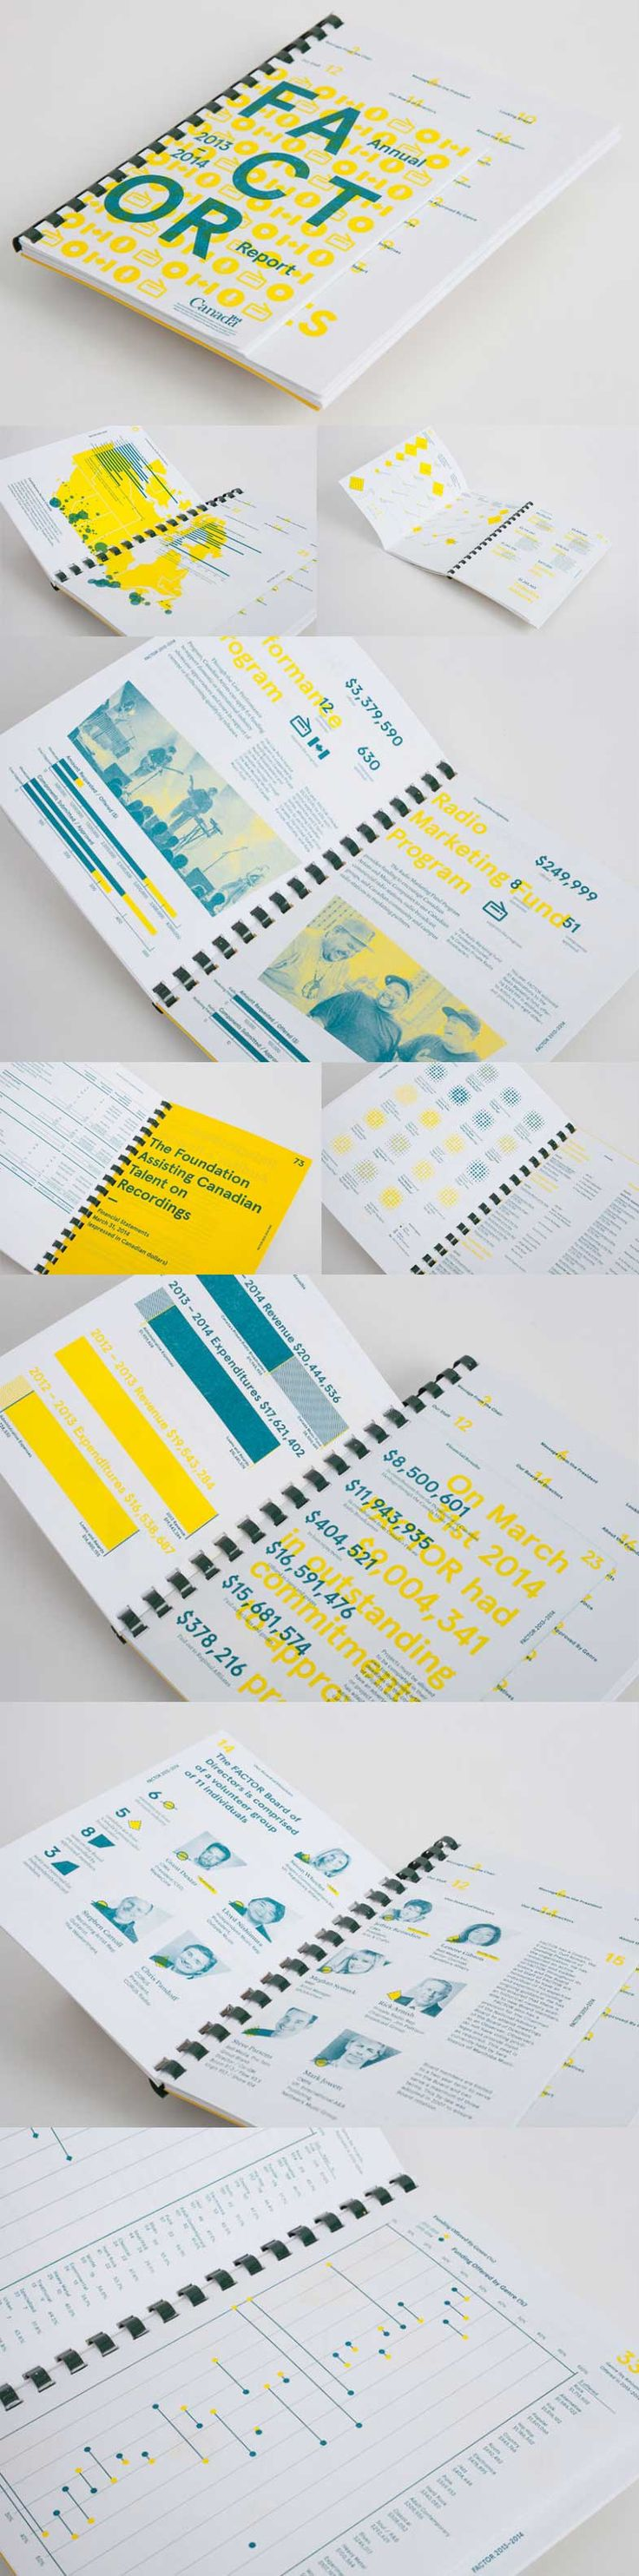 yellow creative annual report design